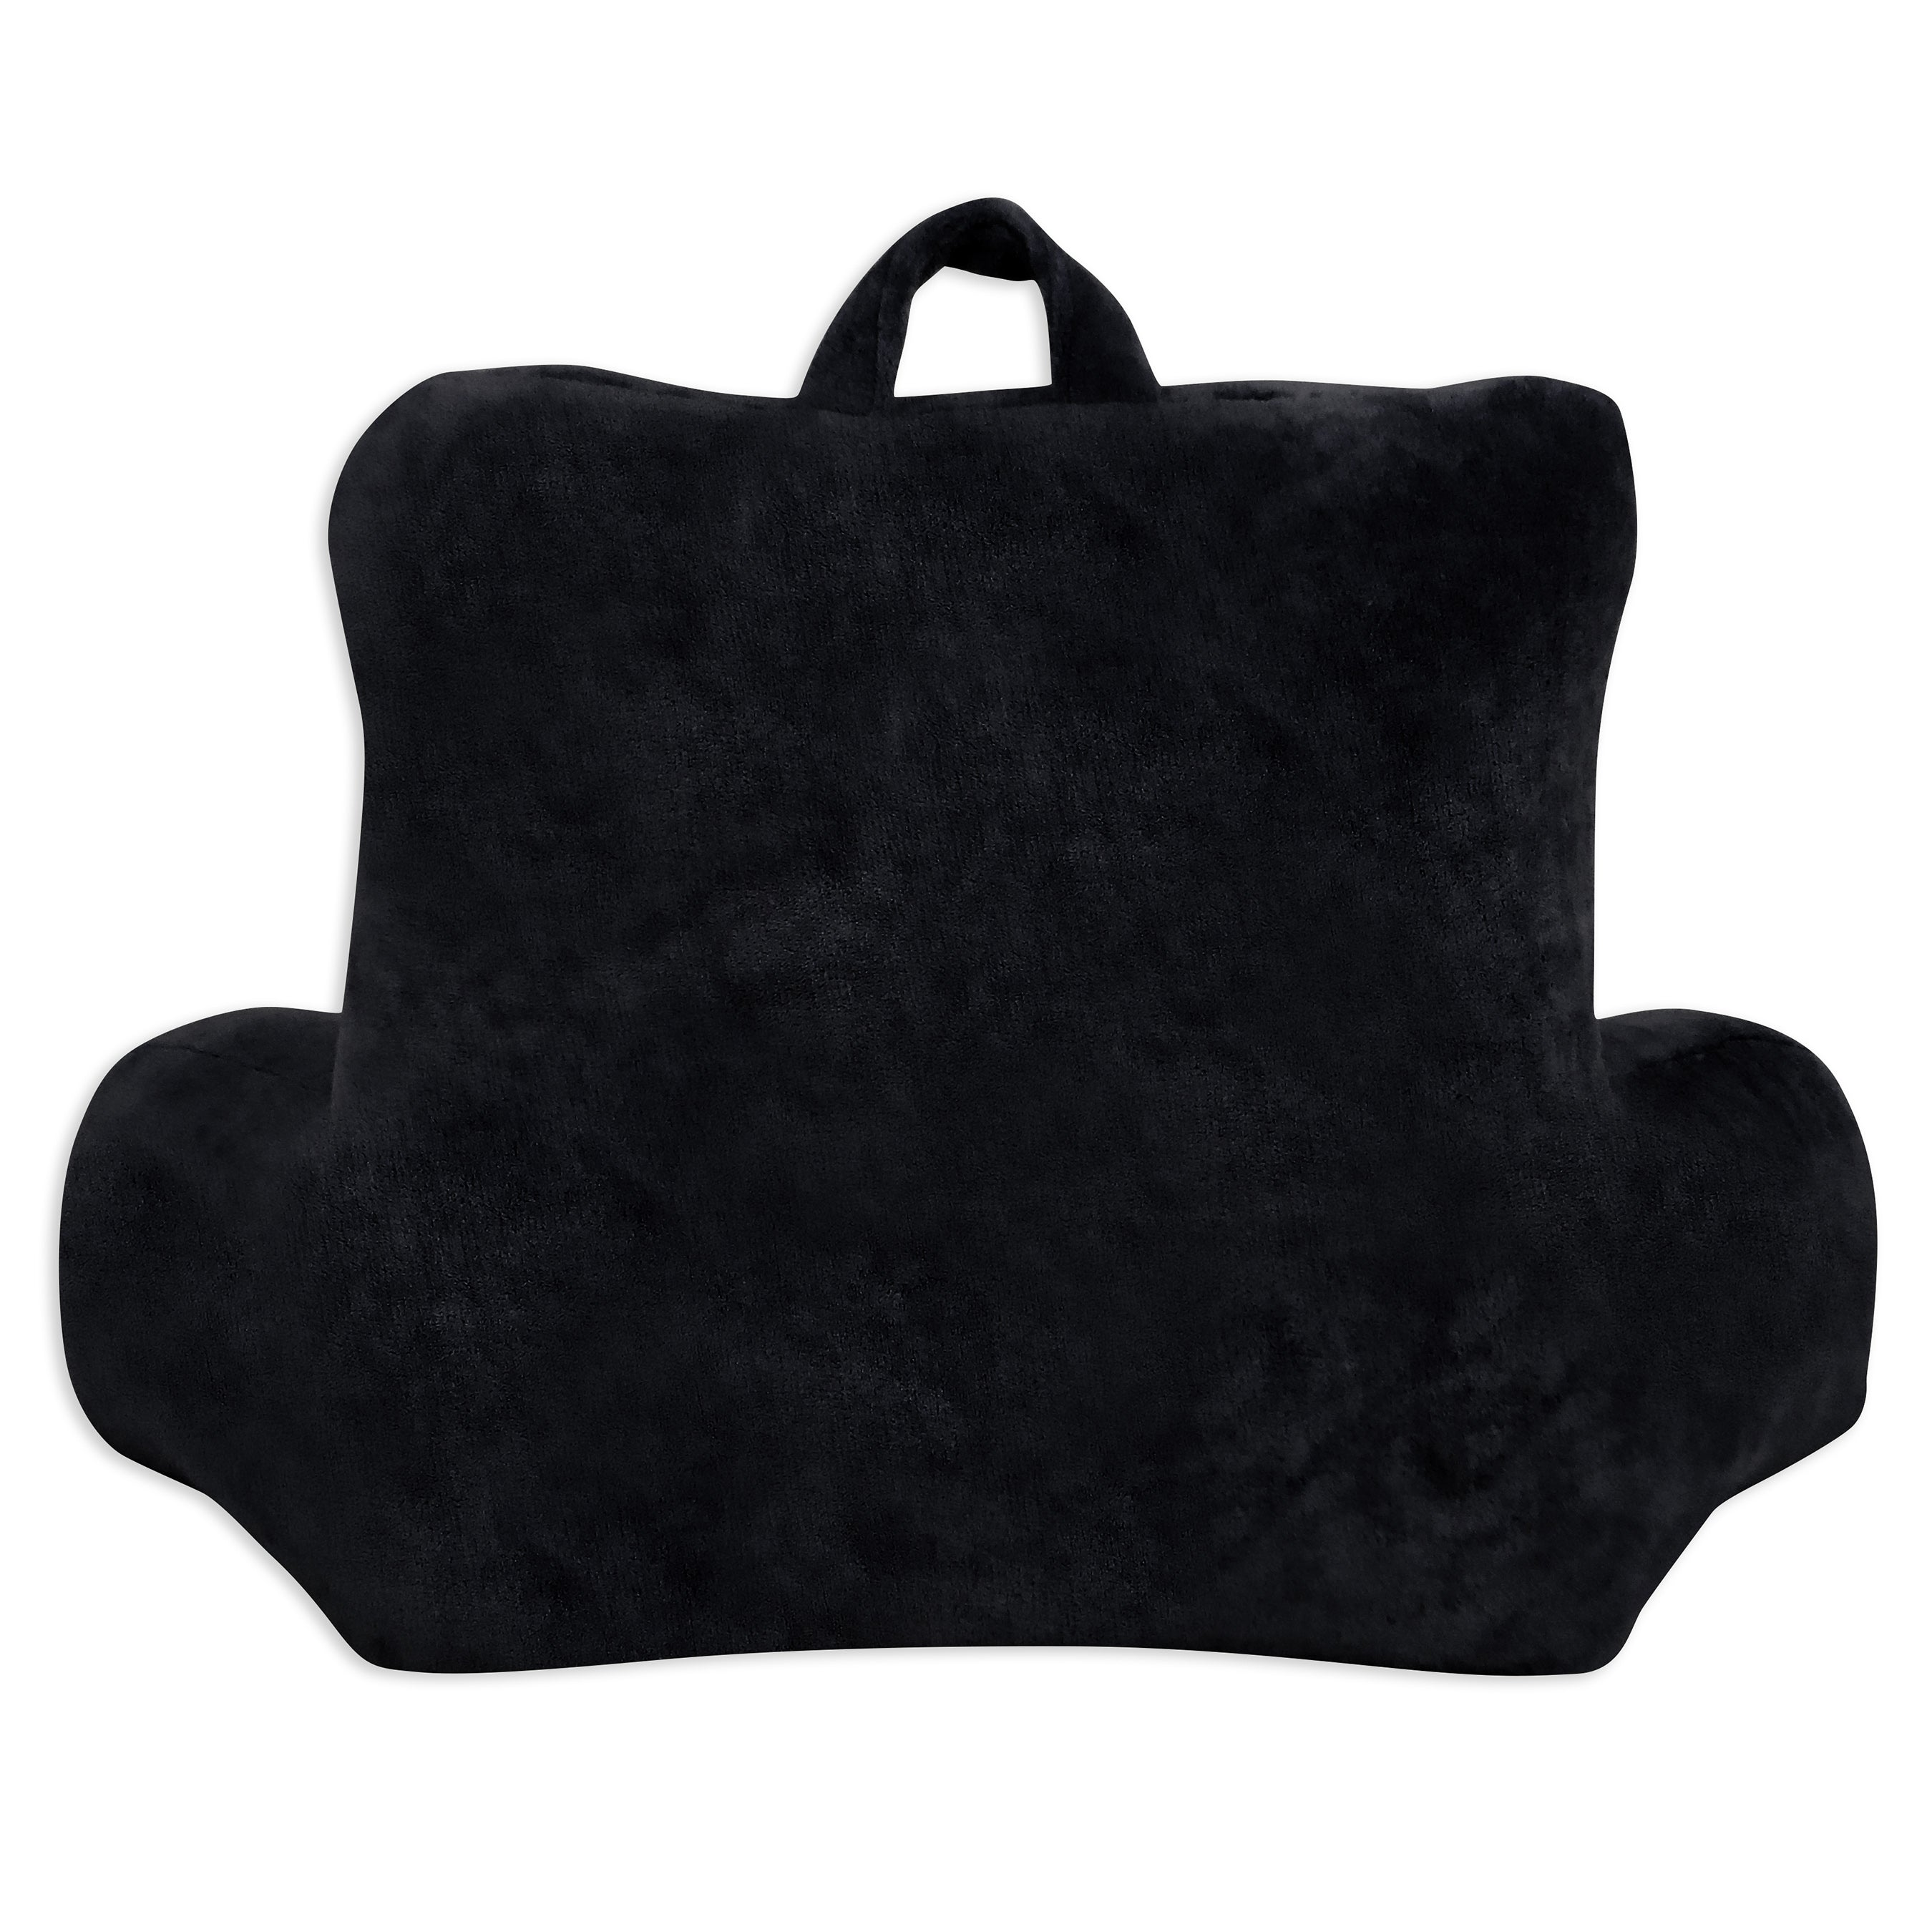 Plush Micro Mink Bed Rest Backrest Pillow with Pocket